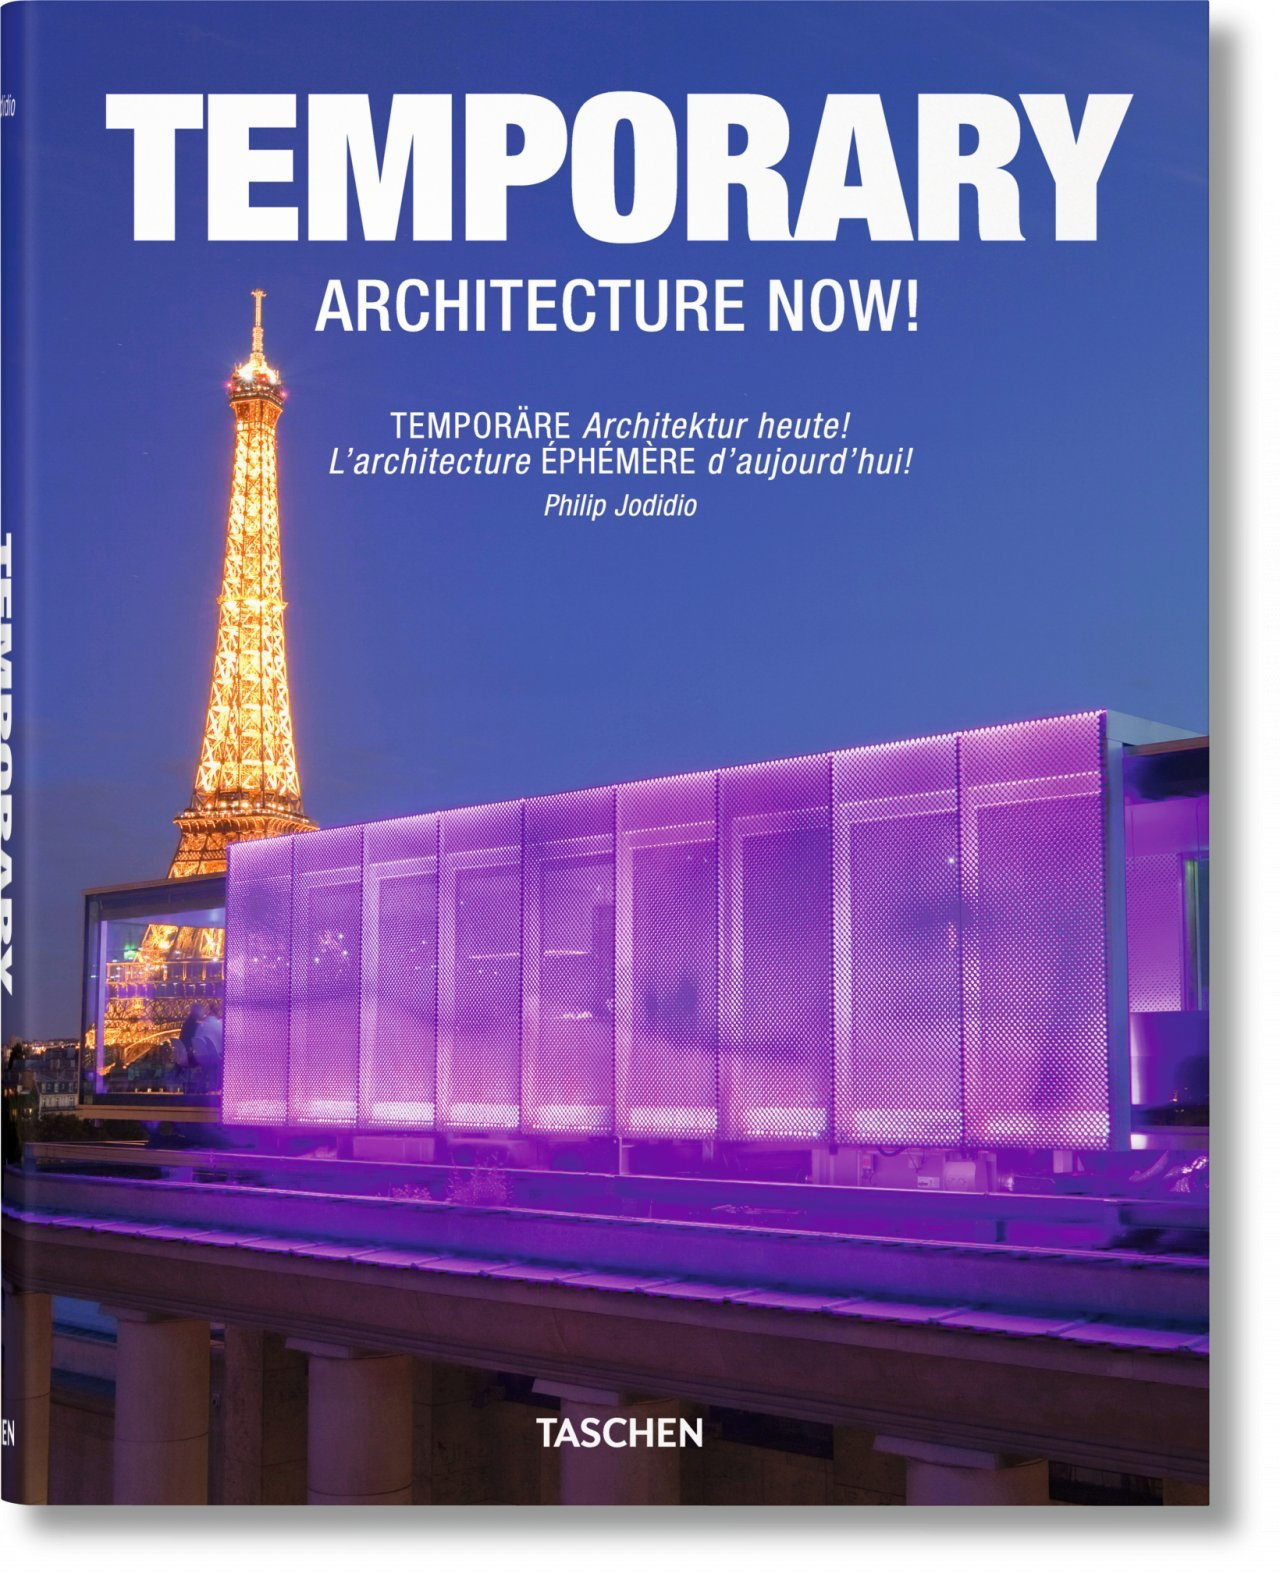 MI-ARCHITECTURE NOW! TEMPORARY